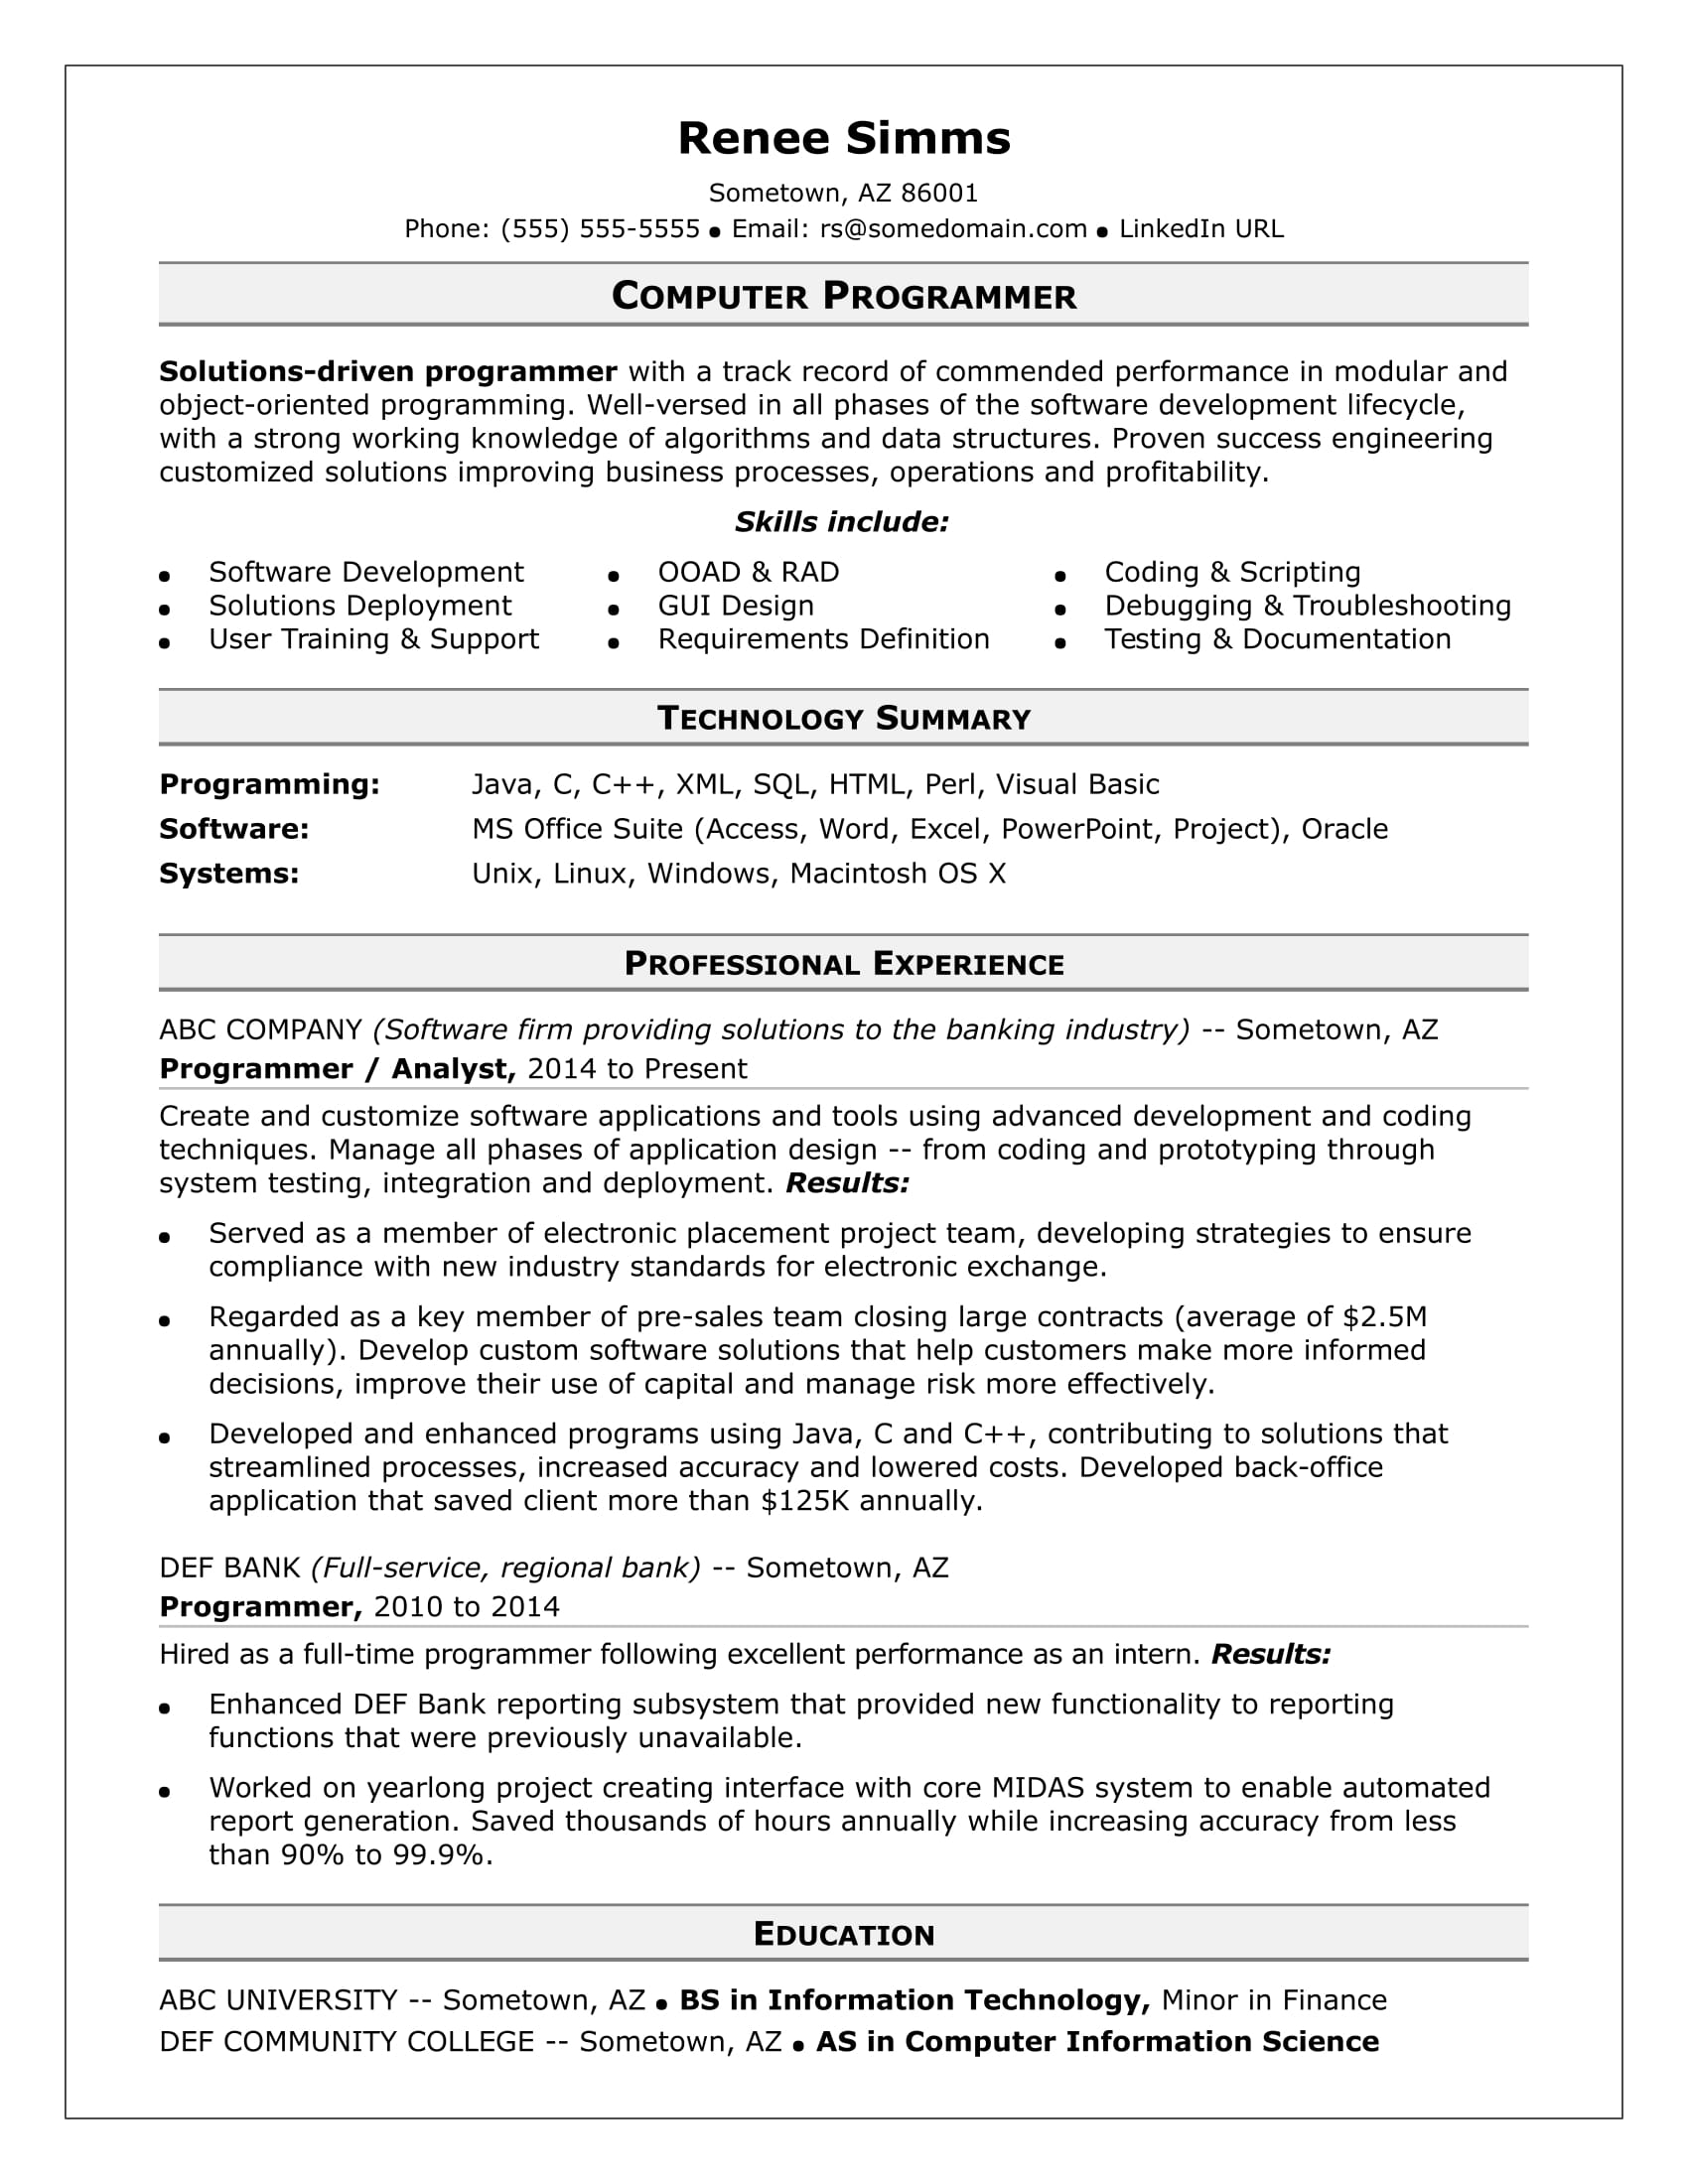 Sample Resume for a Midlevel Computer Programmer | Monster.com